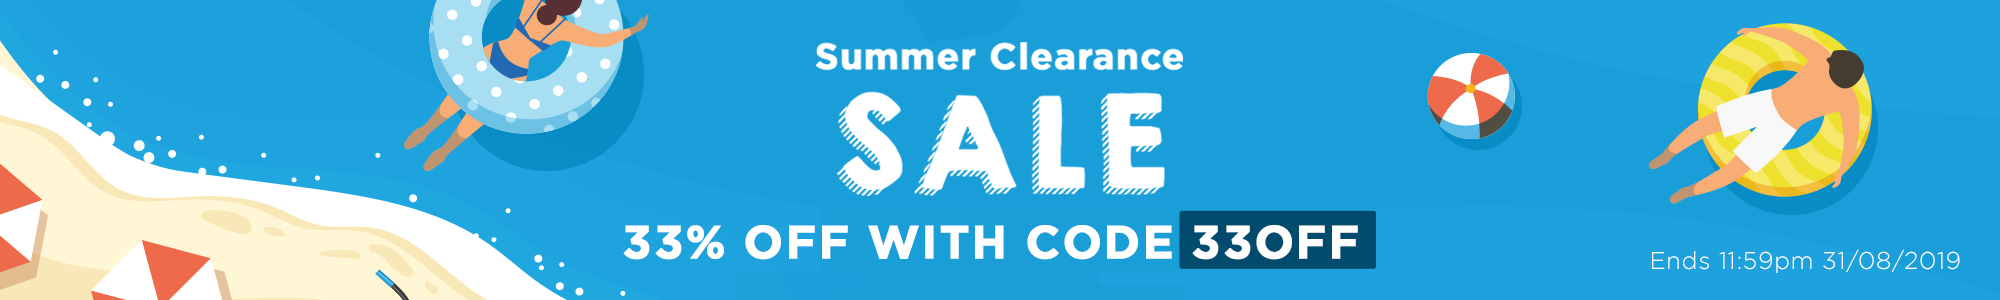 Summer Clearance! 33% Off Selected Items With Code 33OFF